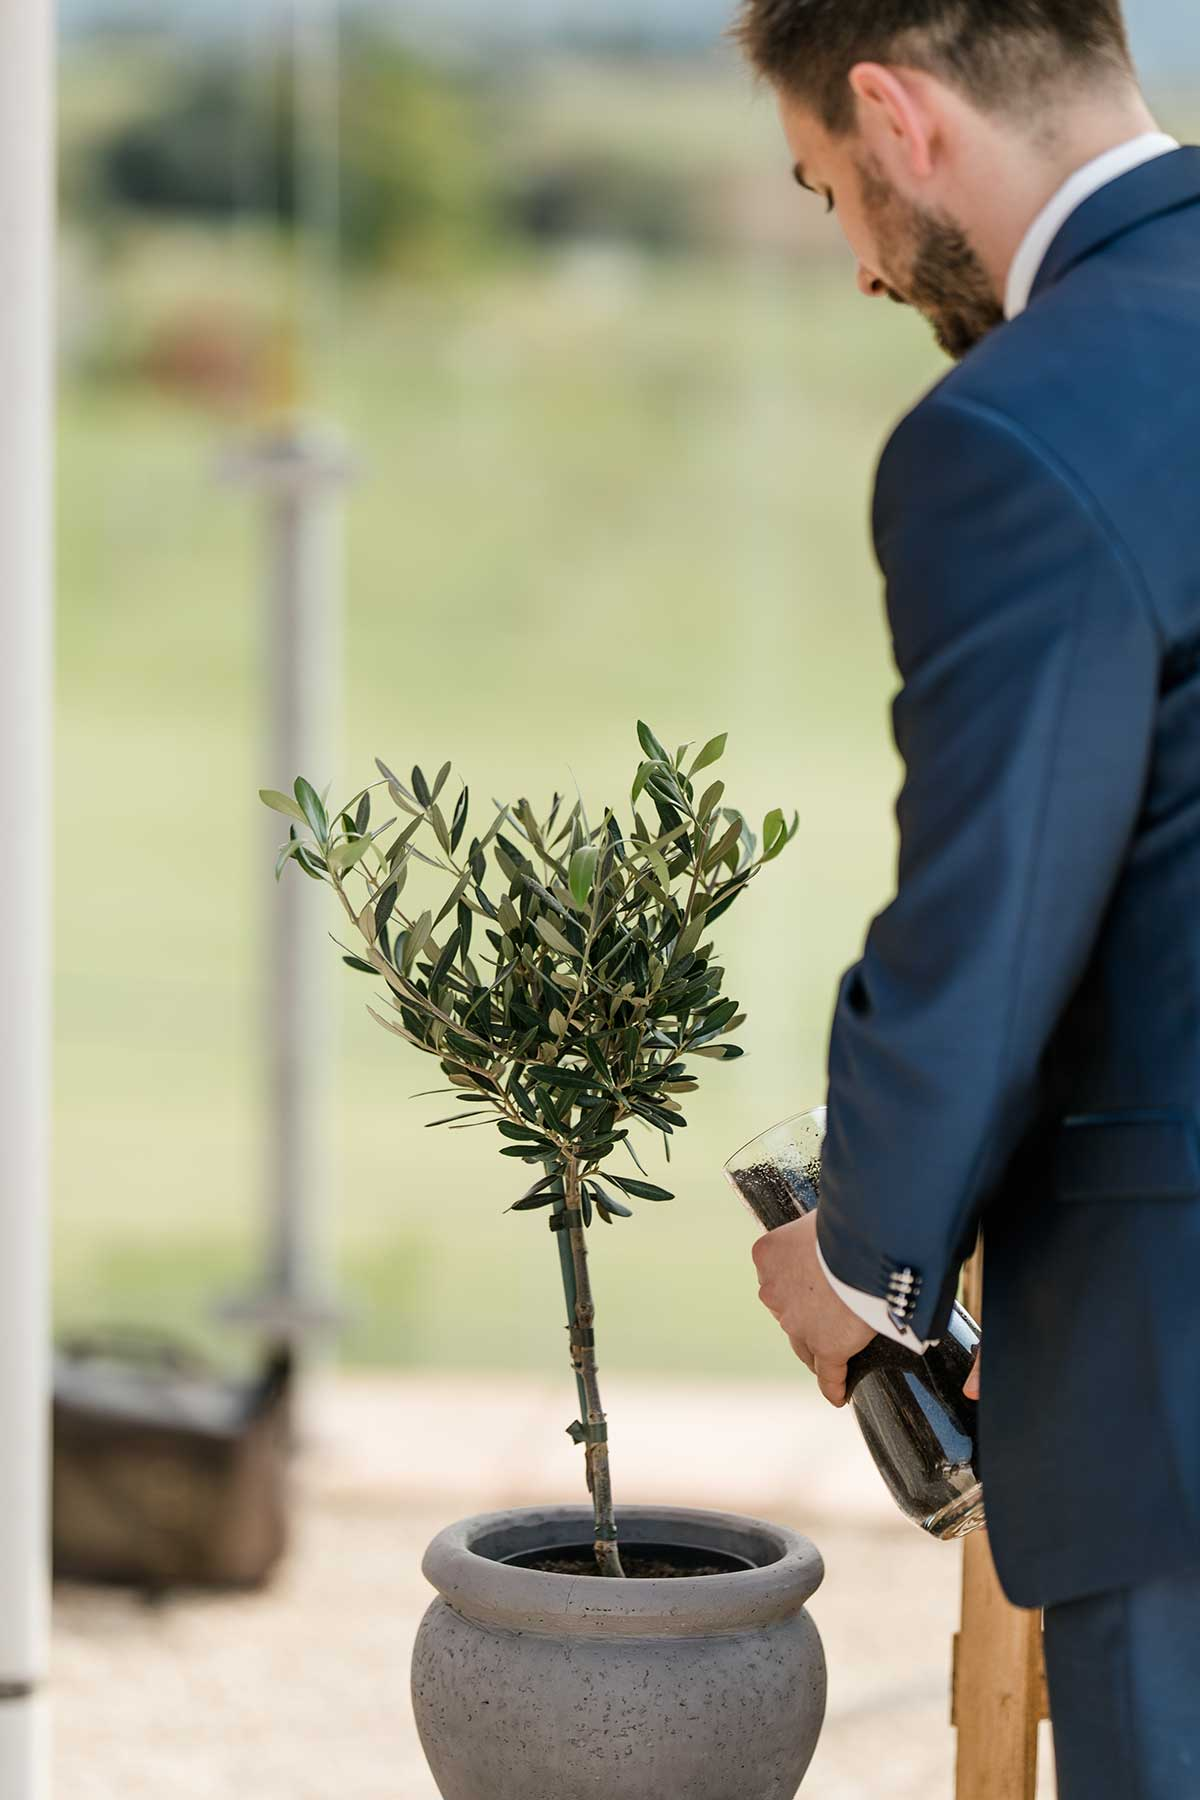 1632628621 773 Planting a tree during the wedding ritual for the wedding - Planting a tree during the wedding: ritual for the wedding ceremony